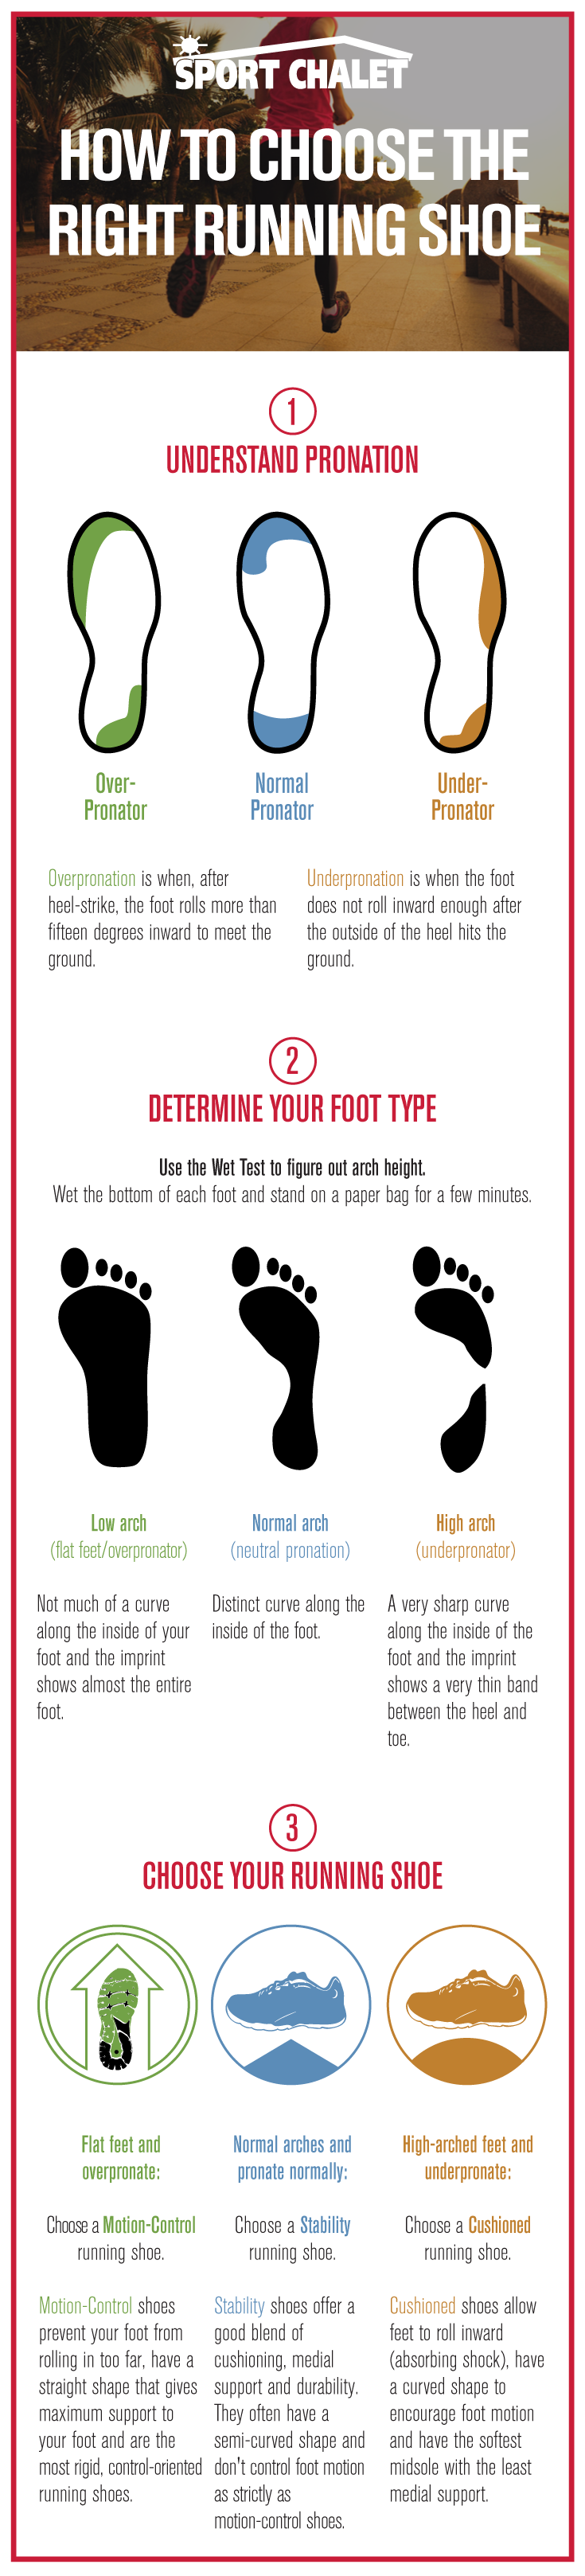 a66862ef8f8 ... and this easy-to-follow guide helped me know that I need very cushioned  shows to support my high arch. How can you choose the right running shoe  for ...